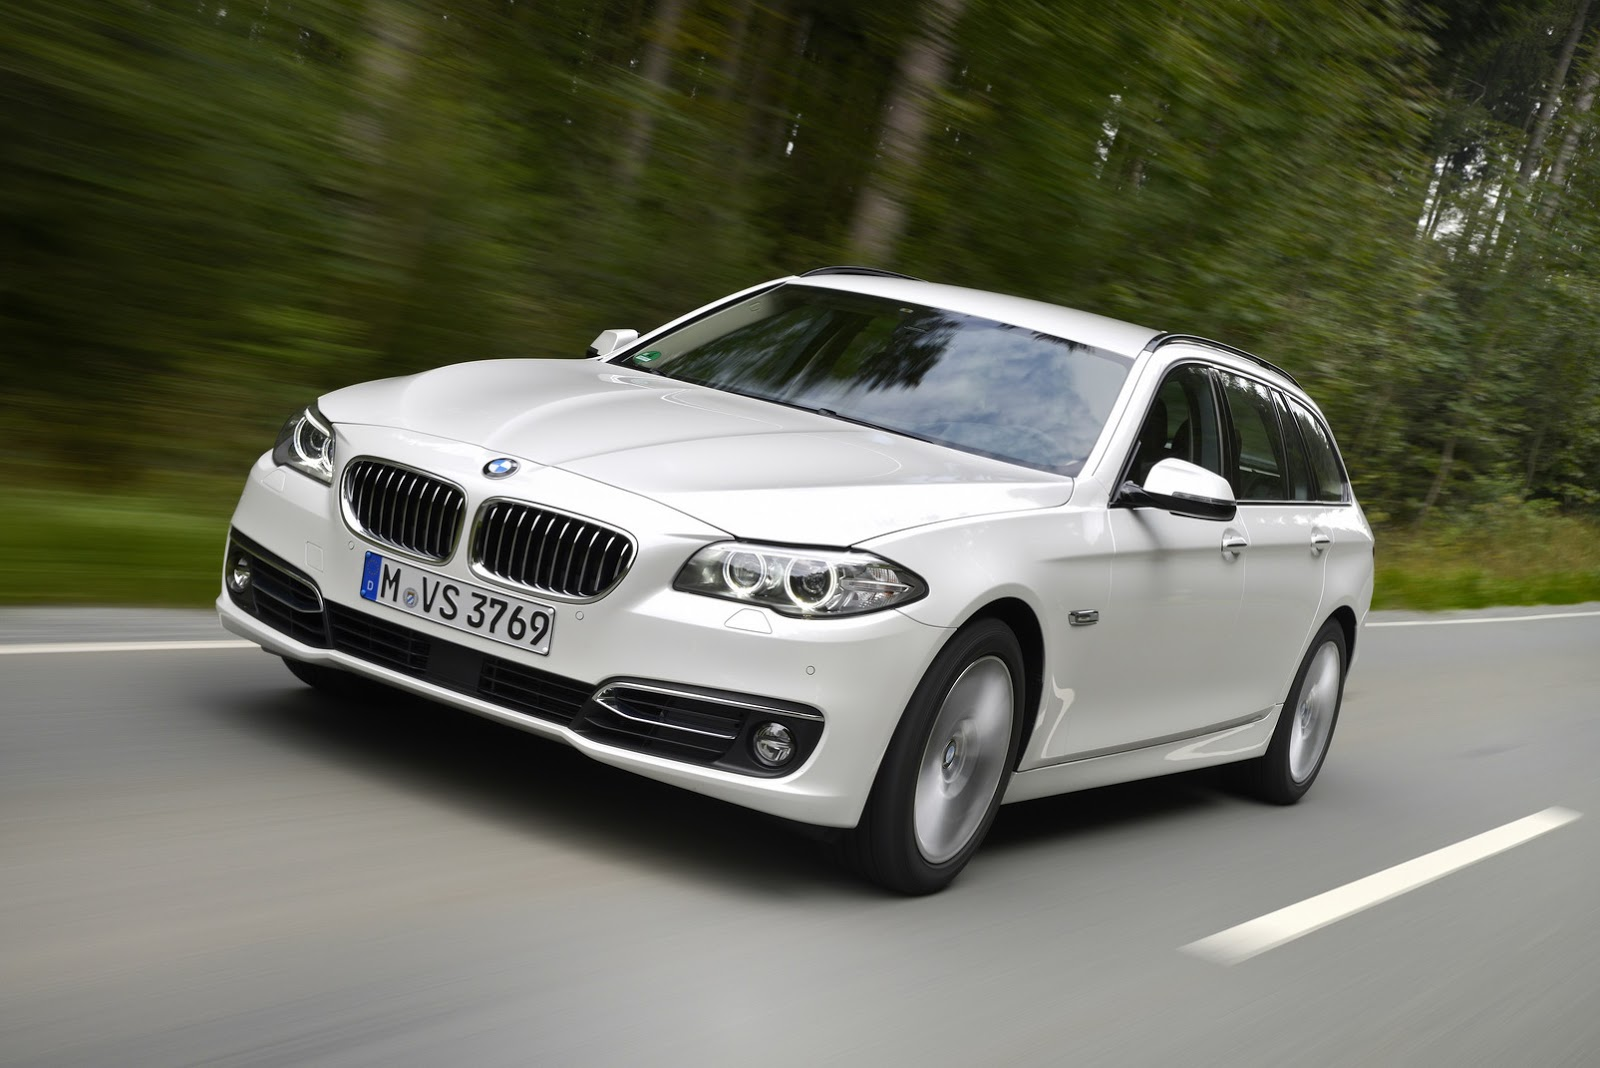 BMW D Review Amazing Pictures And Images Look At The Car - 528d bmw